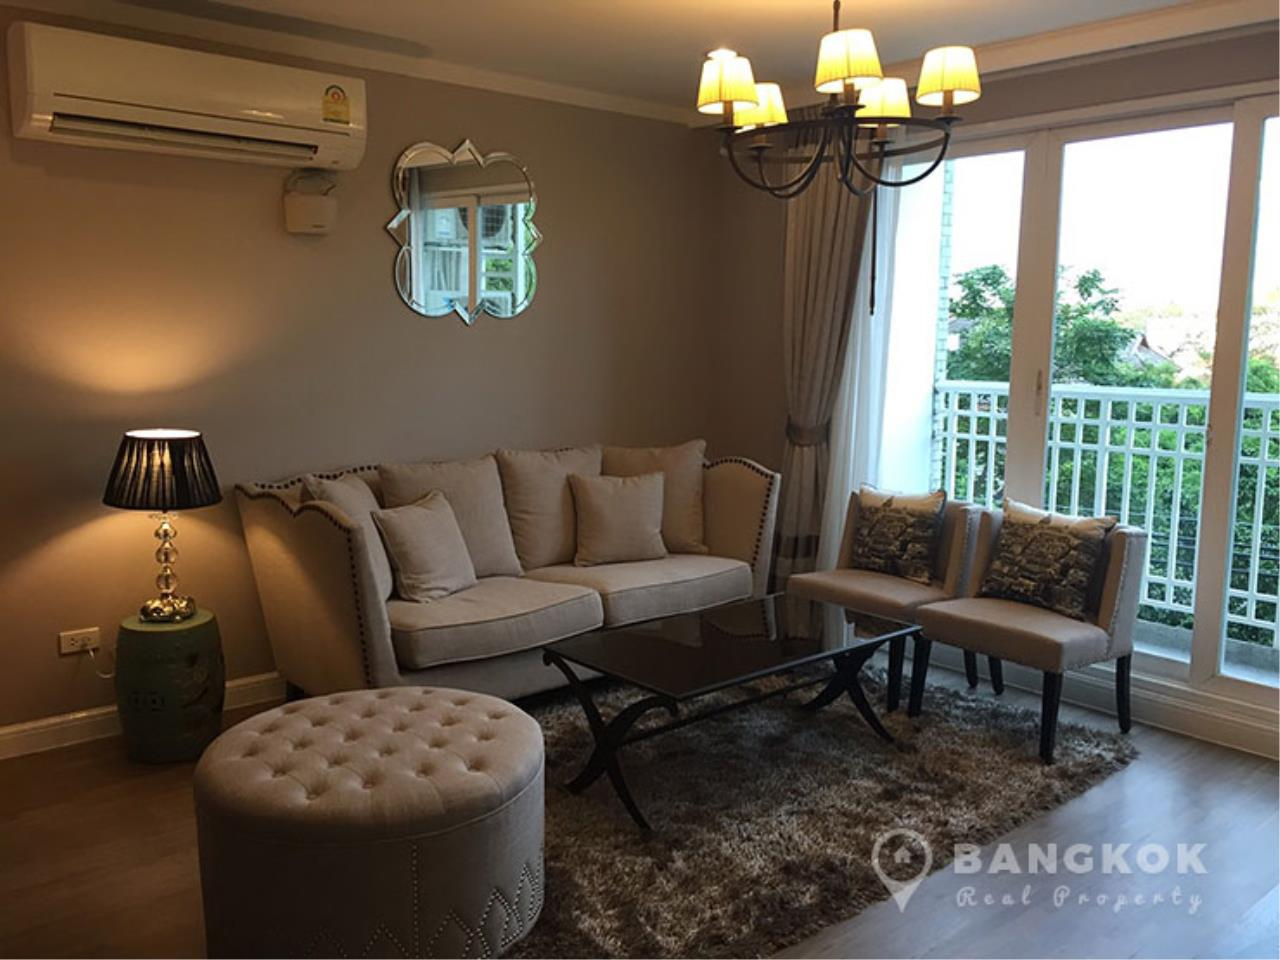 Bangkok Real Property Agency's Baan Siri Yenakard | Spacious Renovated 2 Bed 2 Bath near MRT  1